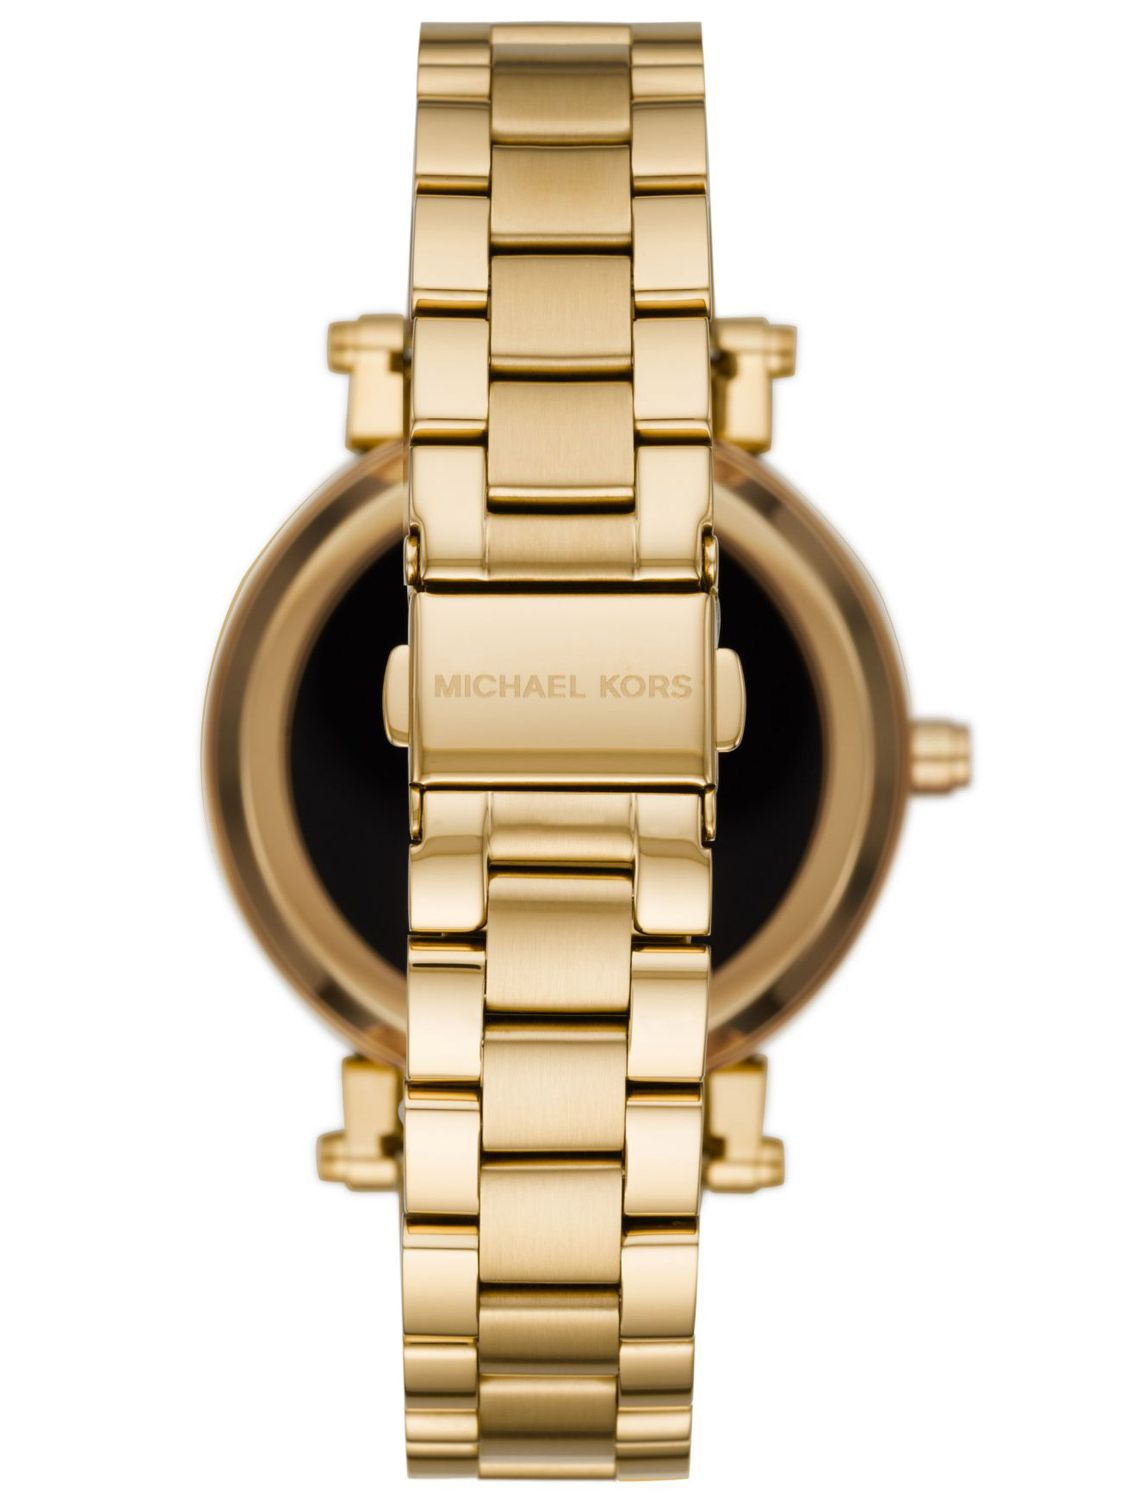 Michael Kors Access Smartwatches Now in Germany Available